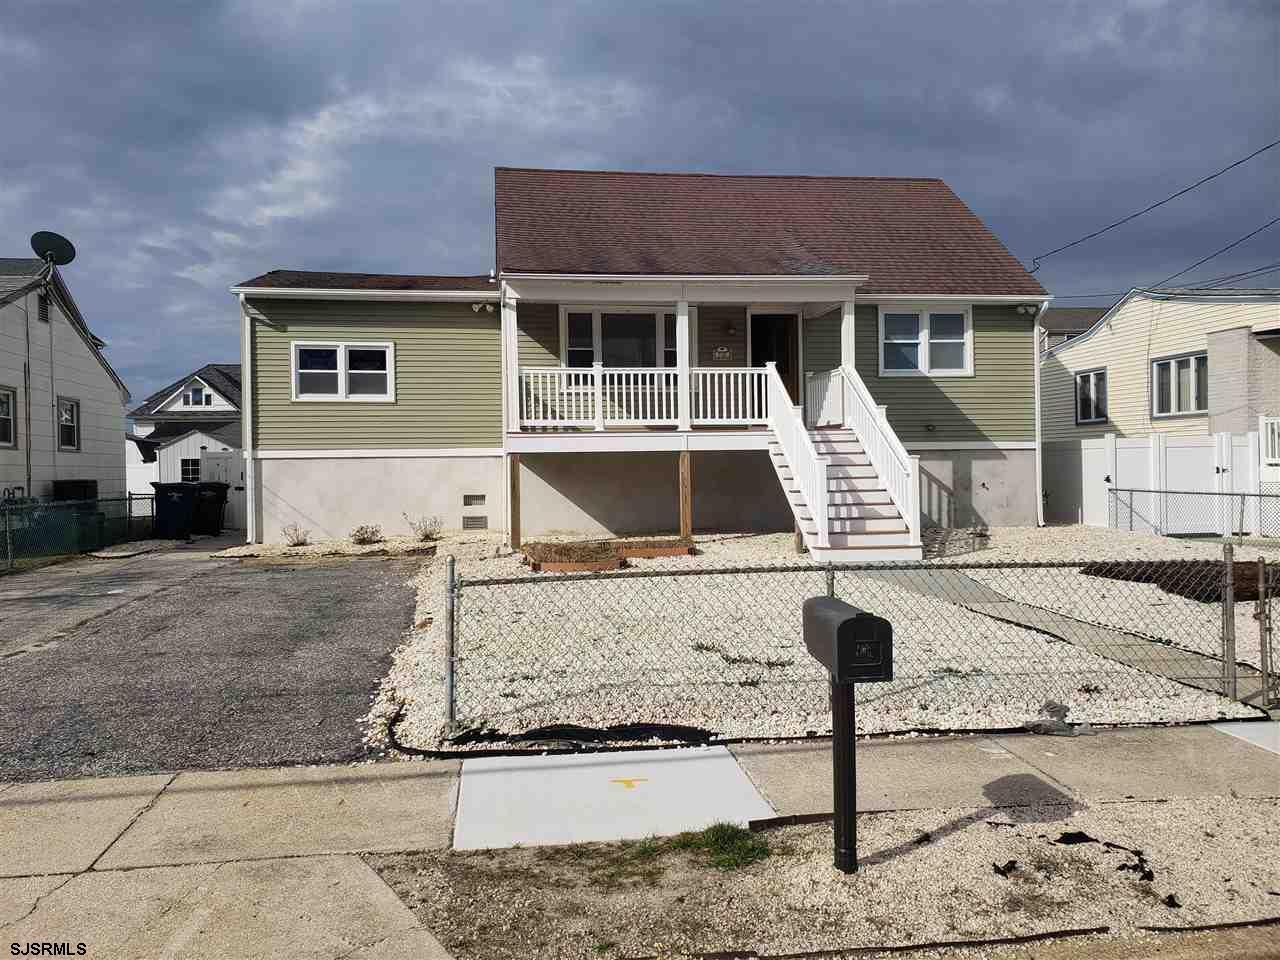 A great opportunity to own a raised rancher on the island with off street parking and a large front